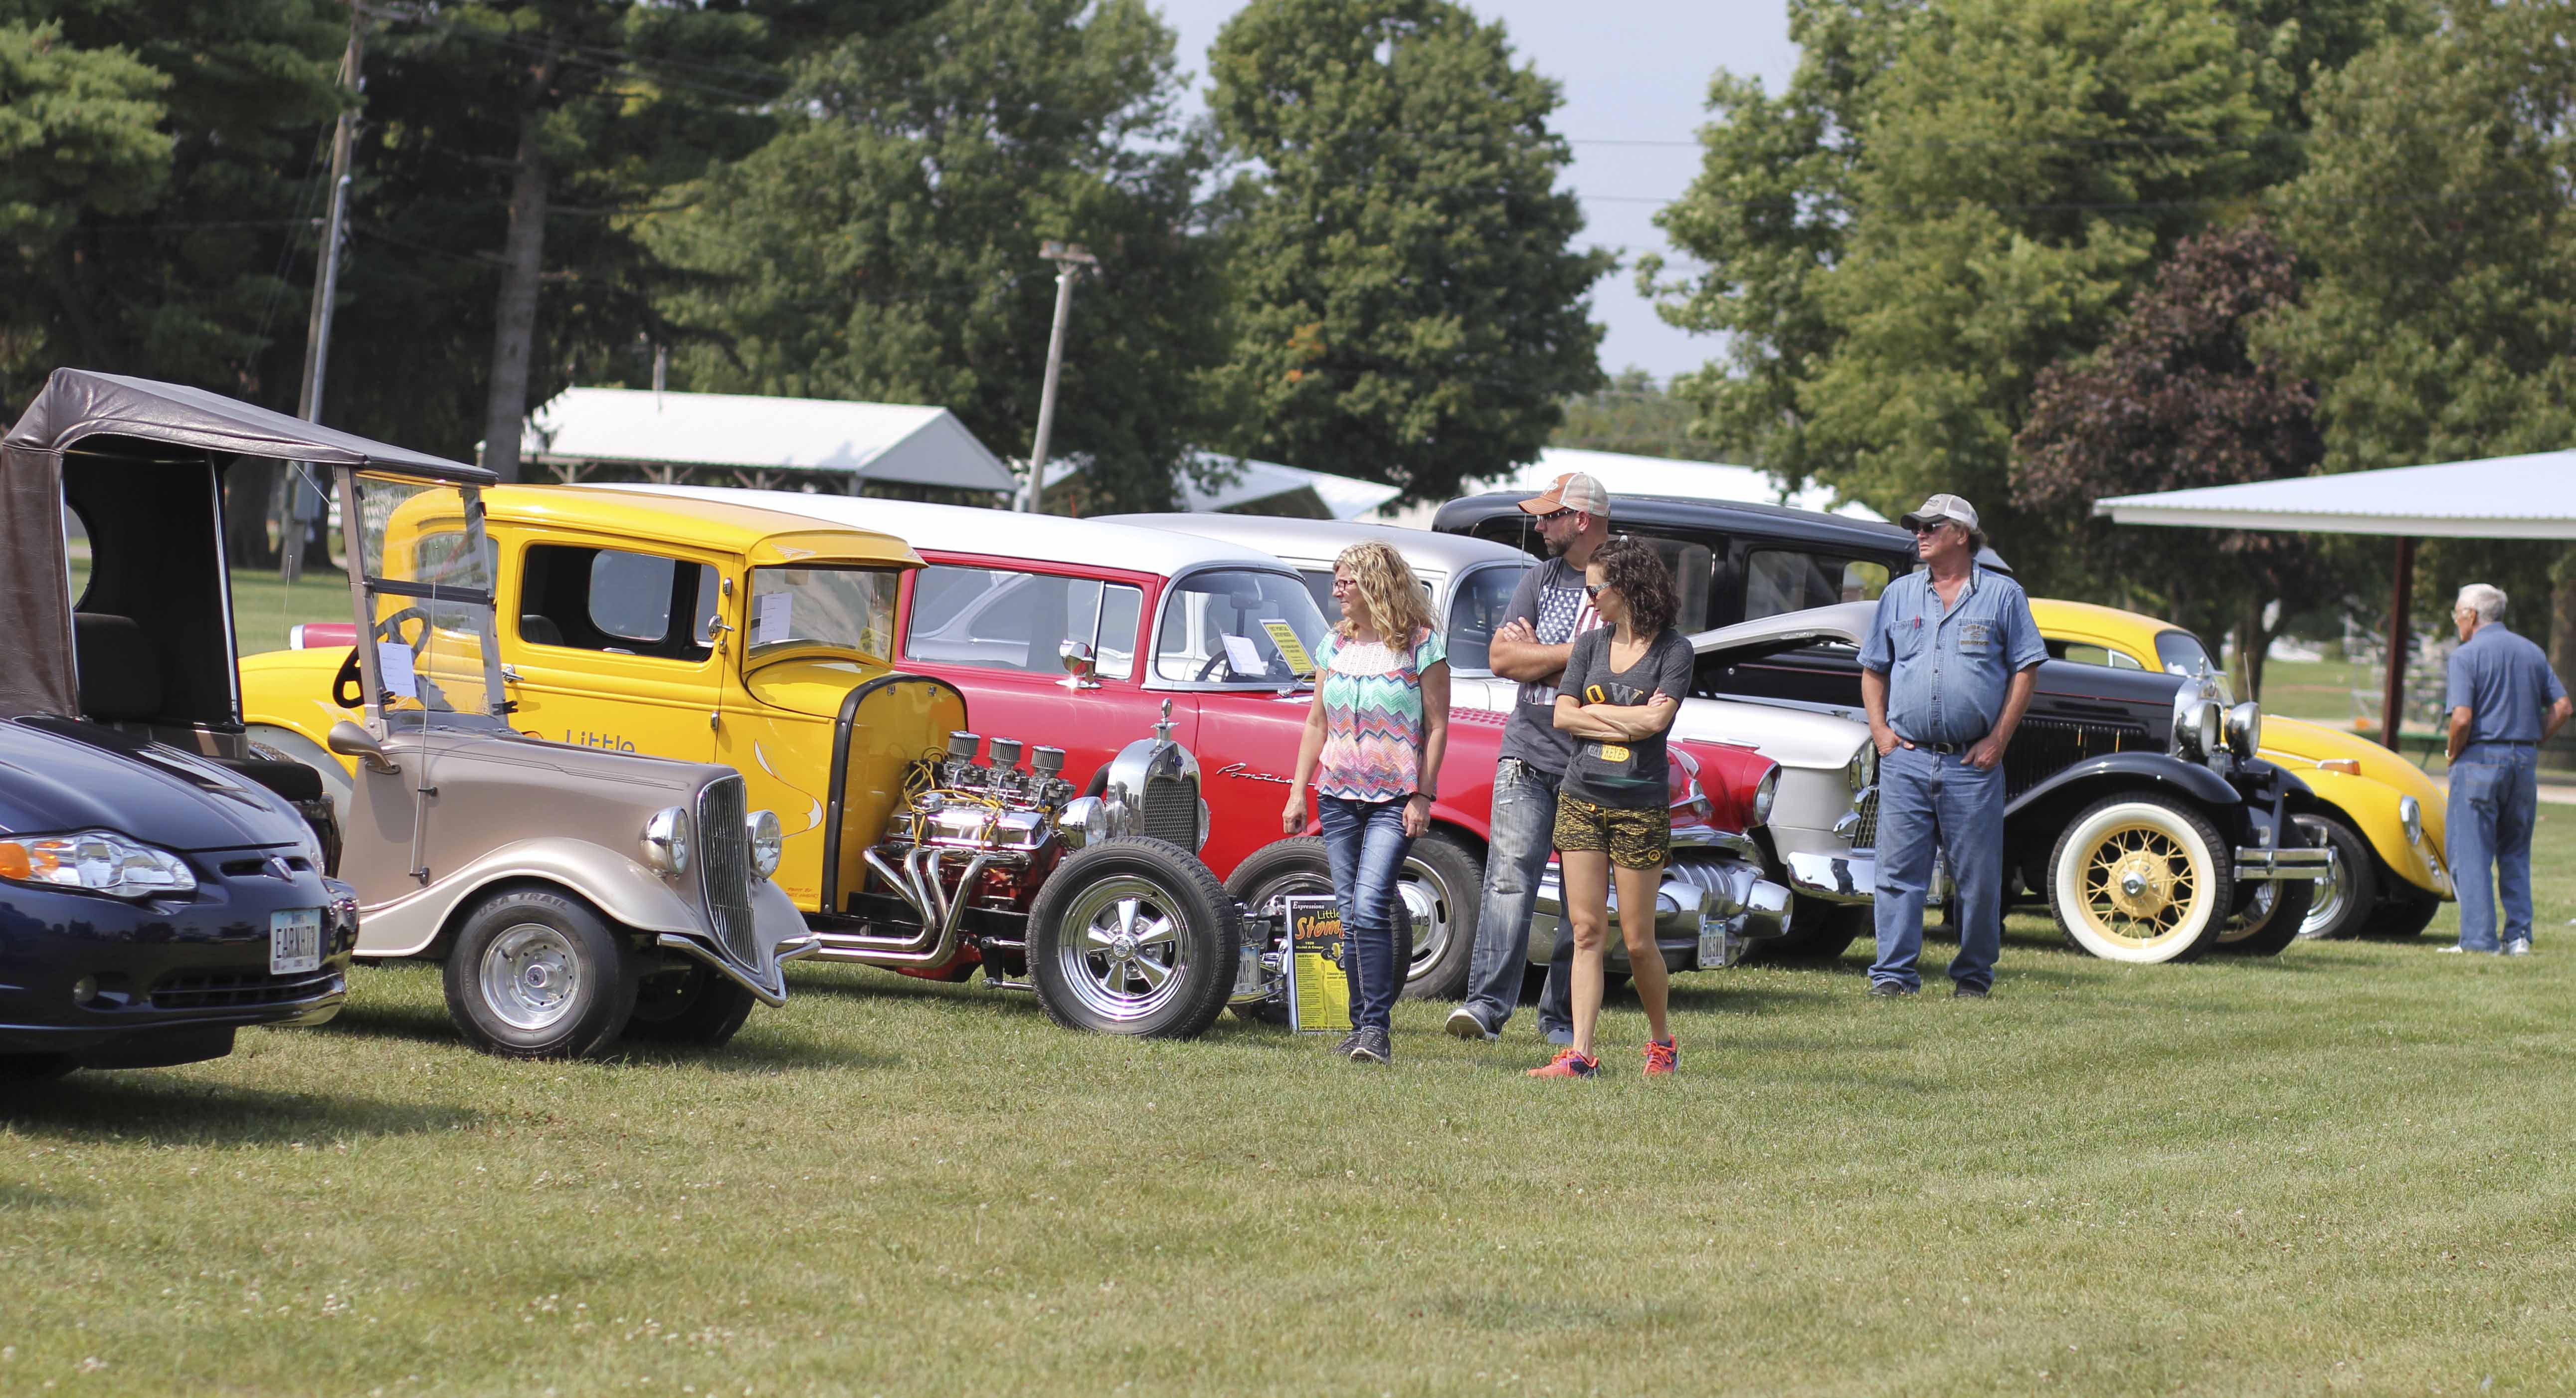 Classic cars line up near the Monticello Golf Club for Cruise to the Club Sept. 2. Golf, food and drinks, prizes and awards, and the Original Rock and Roll Show were all part of the event. (Photos by Pete Temple)